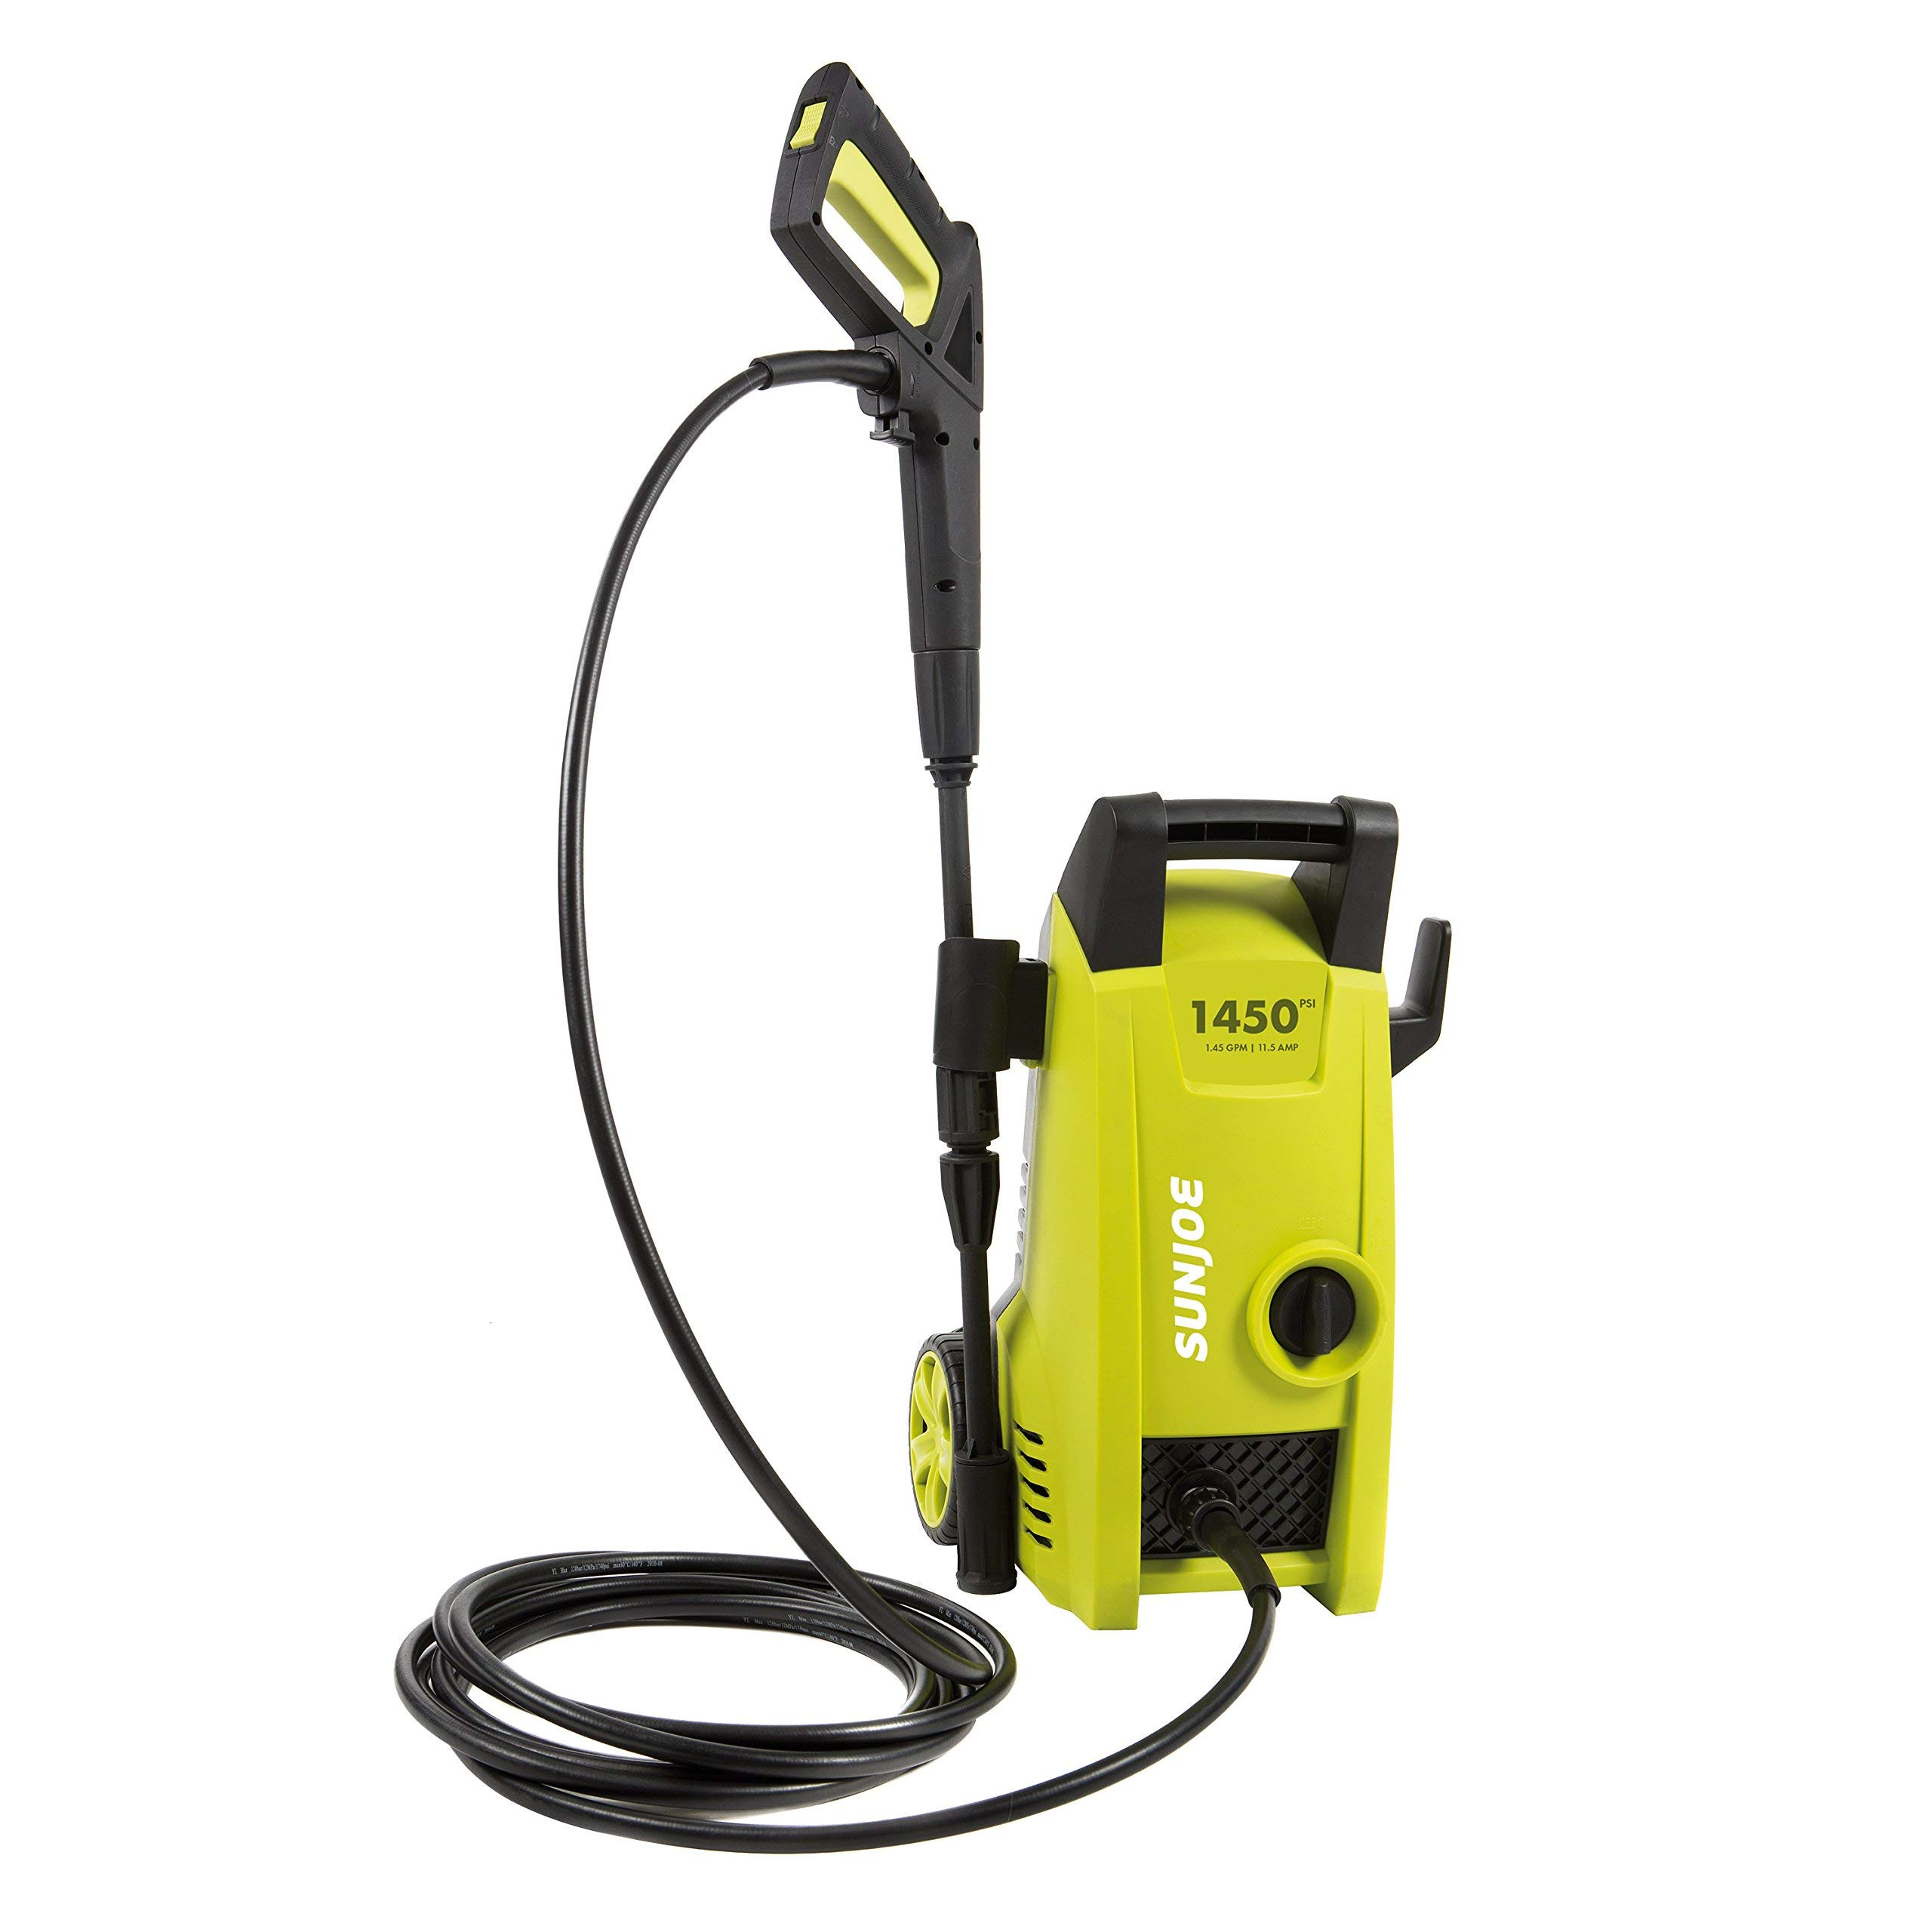 Sun Joe SPX1000 1450 PSI 1.45 GPM 11.5-Amp Electric Pressure Washer, Green (Renewed)